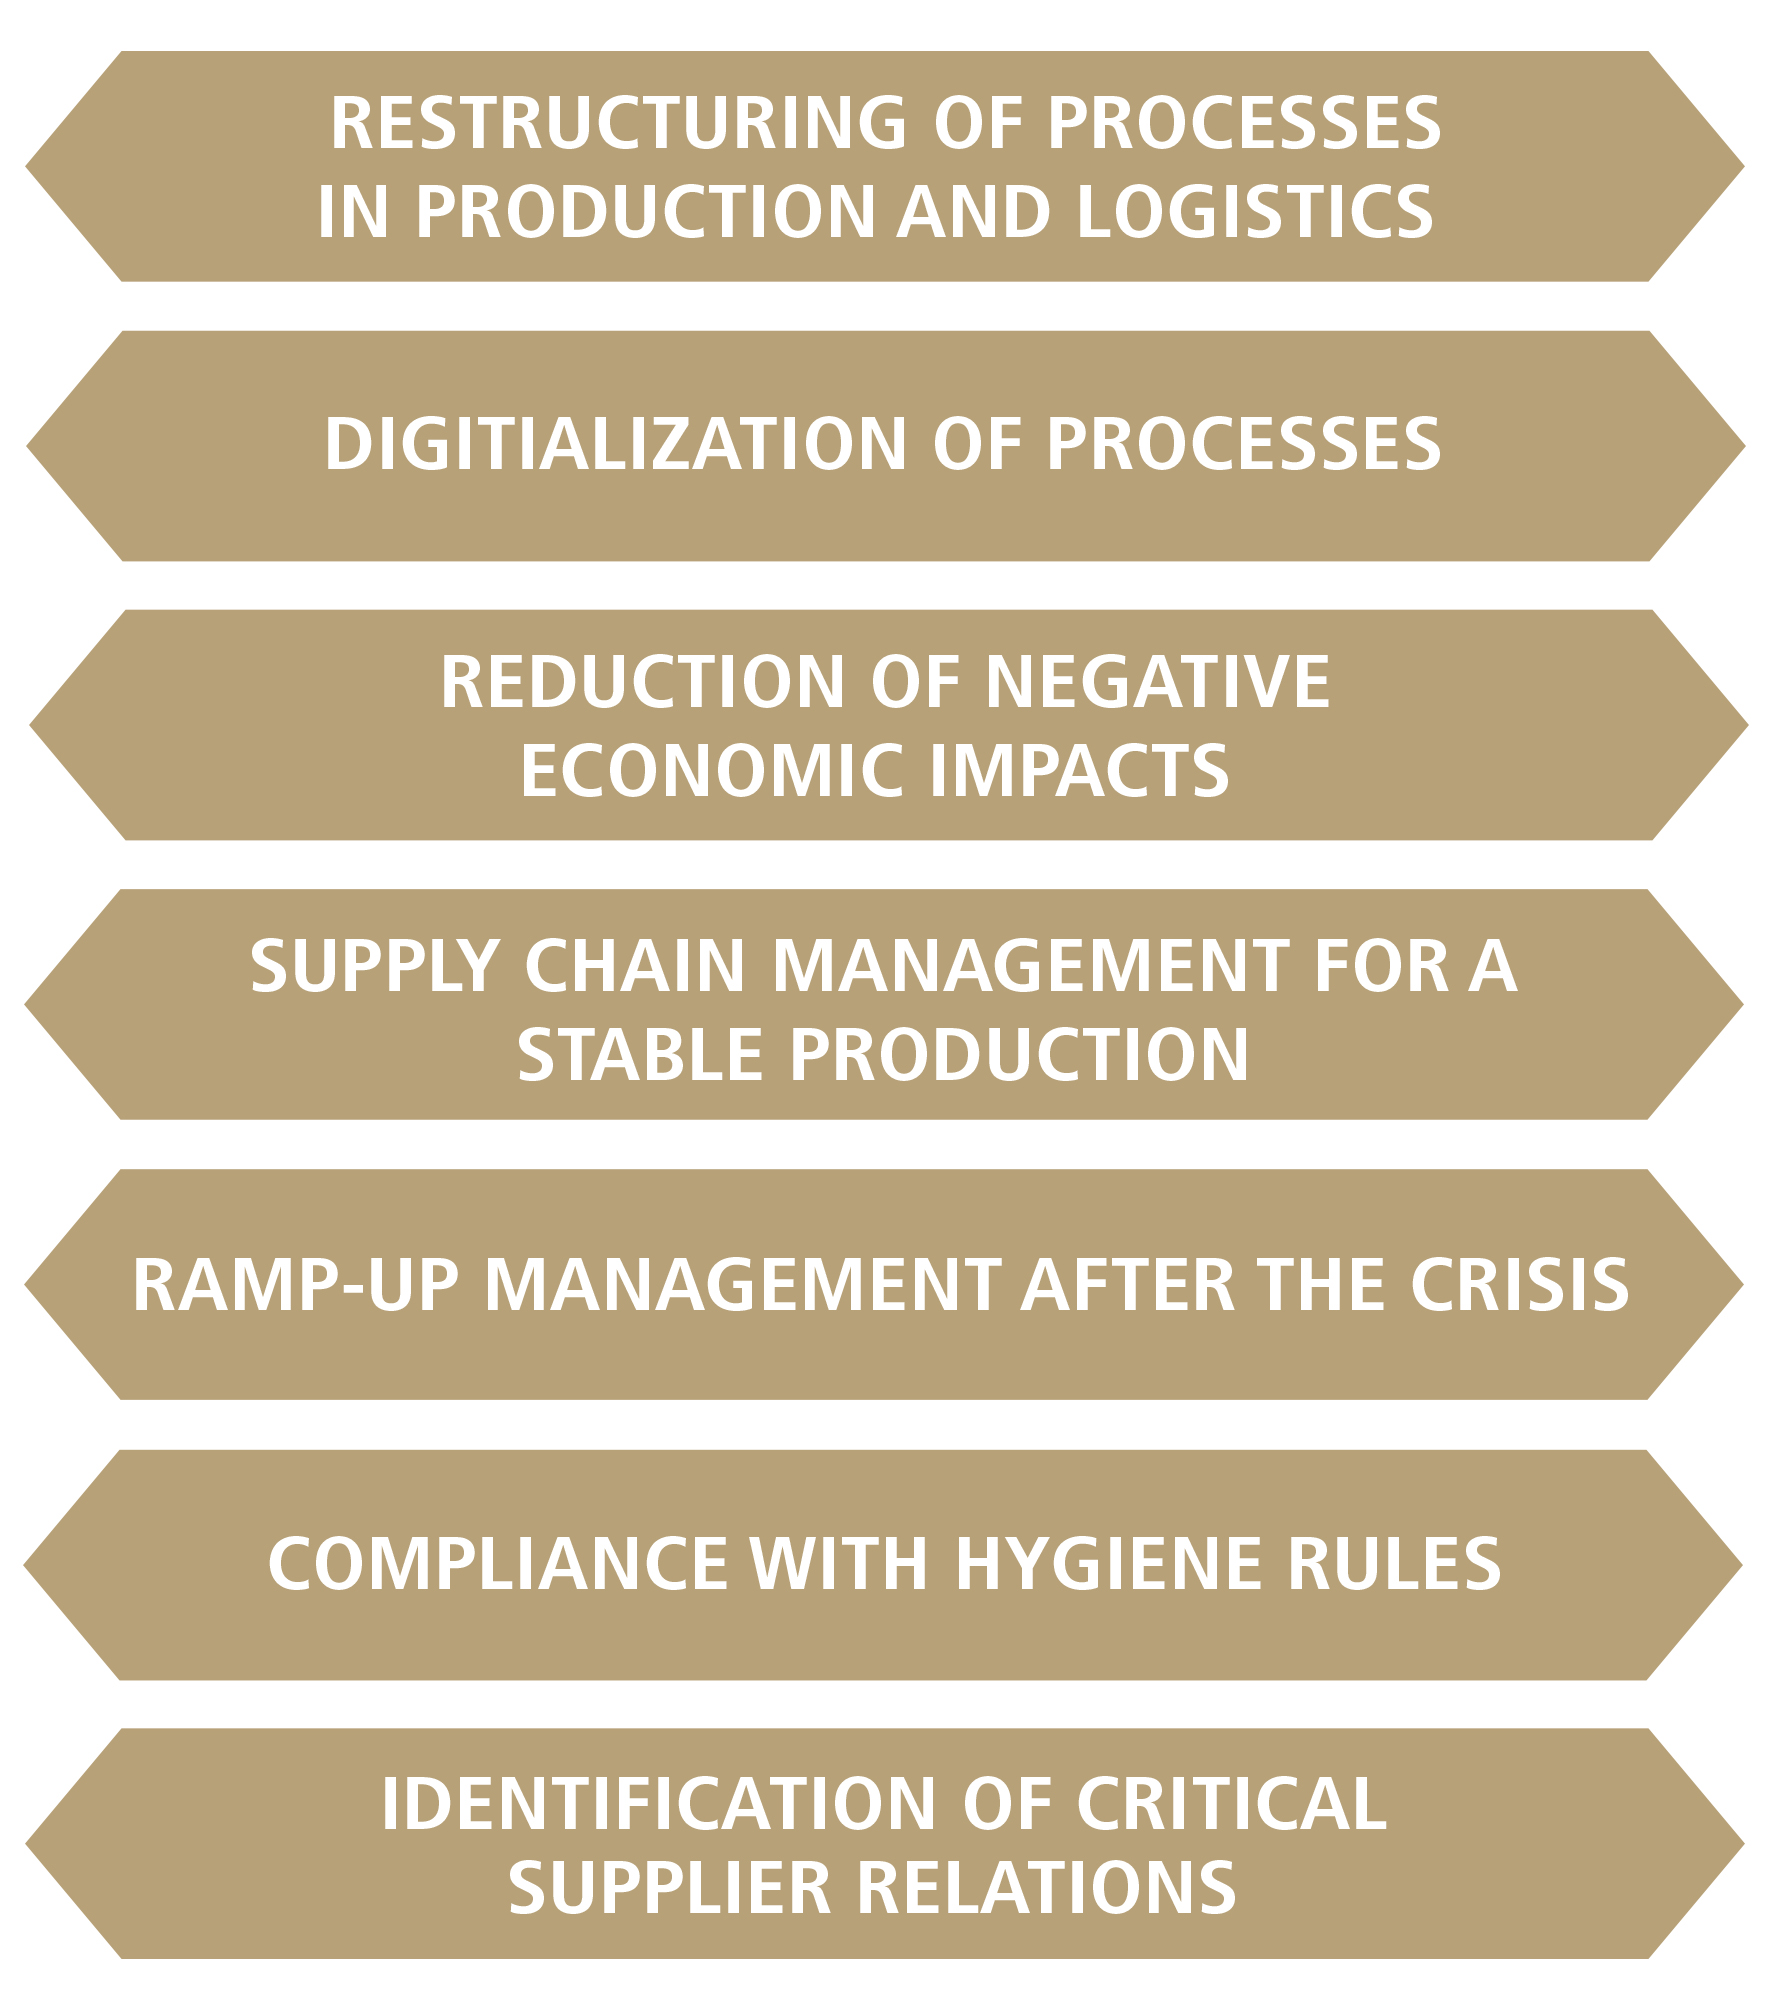 restructuring of processes in production and logistics, digitialization of processes, reduction of negative economic impacts, suppy chain management  for a stable production, ramp-up management after the crisis, compiance with hygiene rules